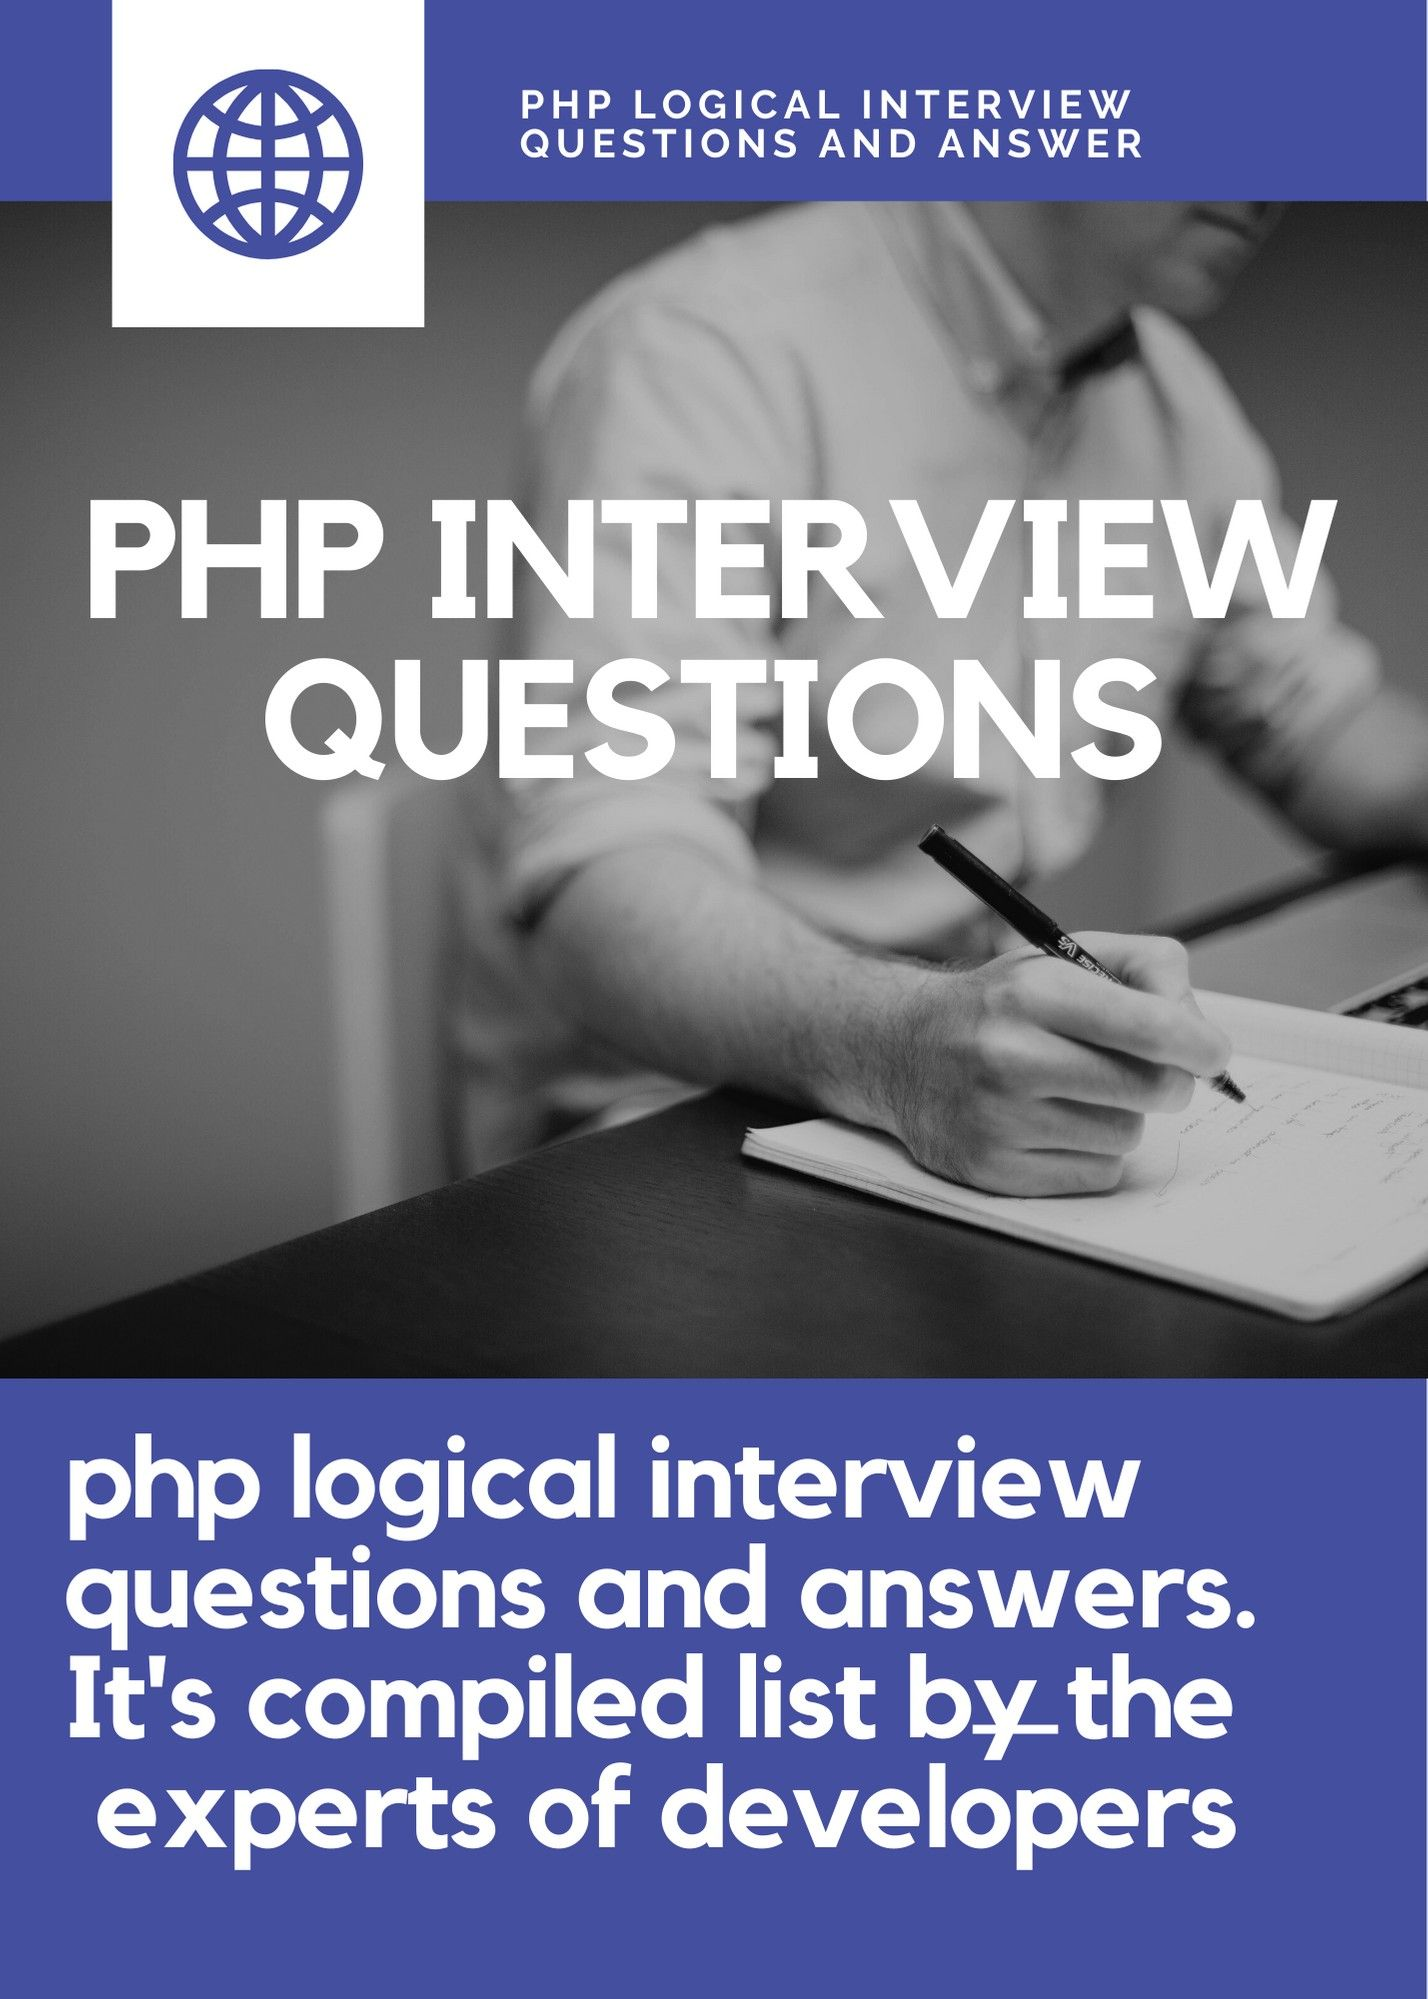 Php Logical Interview Questions And Answers In 2020 Interview Questions And Answers Interview Questions This Or That Questions